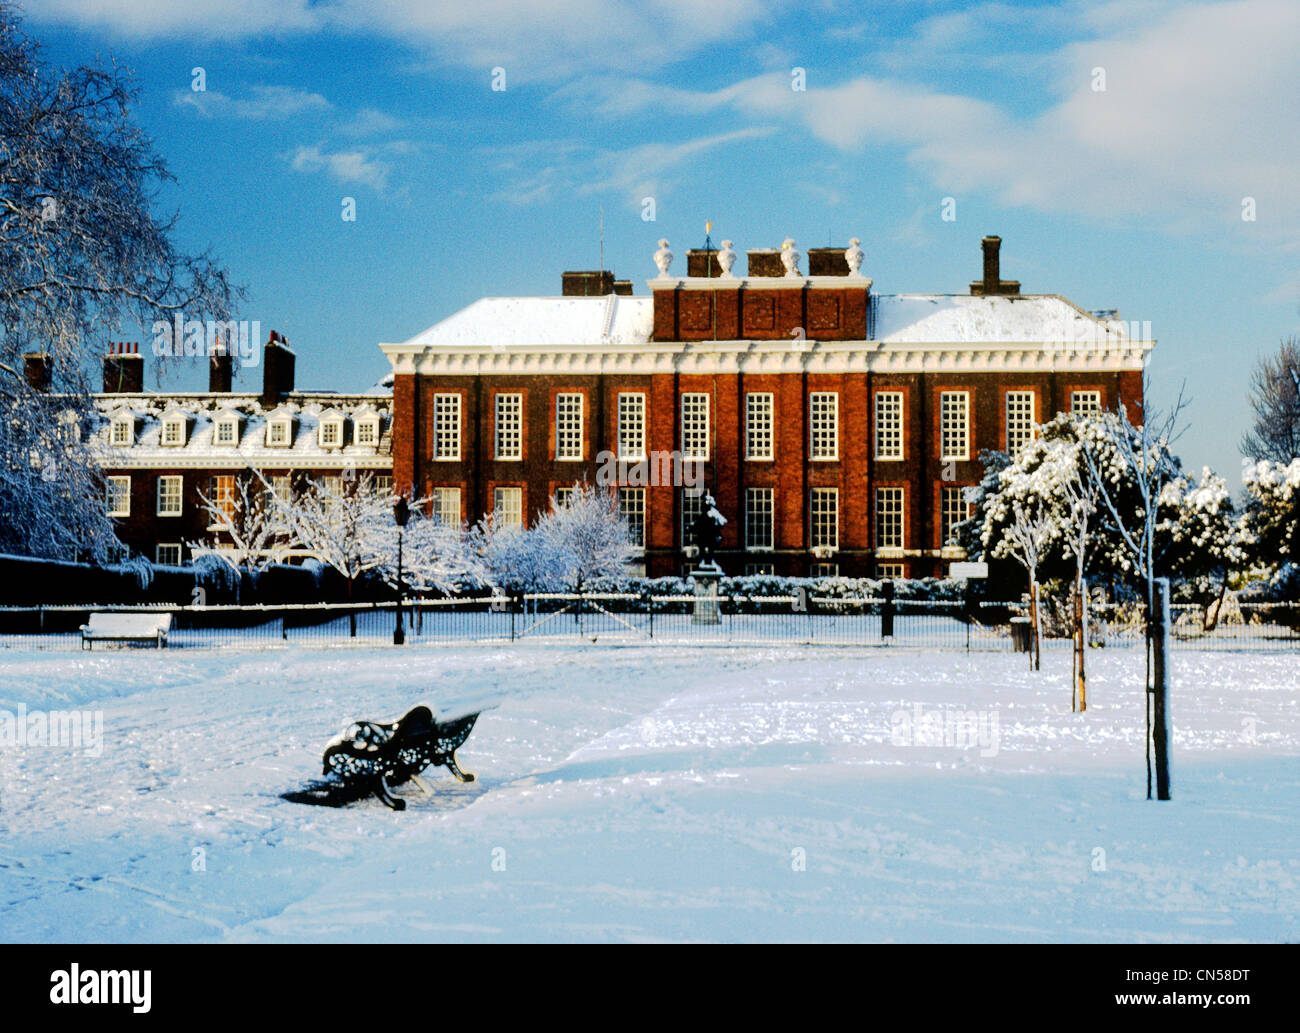 Winsome Kensington Gardens Winter London Stock Photos  Kensington Gardens  With Likable Kensington Palace Snow Kensington Gardens Winter London England Uk English  Parks Park Royal Palaces Residence With Adorable Organic Gardening Also Plants Vs Zombies Garden Warfare Videos In Addition Split Level Garden Ideas And Convent Garden London As Well As Modern Garden Path Ideas Additionally Apartments Algarve Gardens From Alamycom With   Likable Kensington Gardens Winter London Stock Photos  Kensington Gardens  With Adorable Kensington Palace Snow Kensington Gardens Winter London England Uk English  Parks Park Royal Palaces Residence And Winsome Organic Gardening Also Plants Vs Zombies Garden Warfare Videos In Addition Split Level Garden Ideas From Alamycom